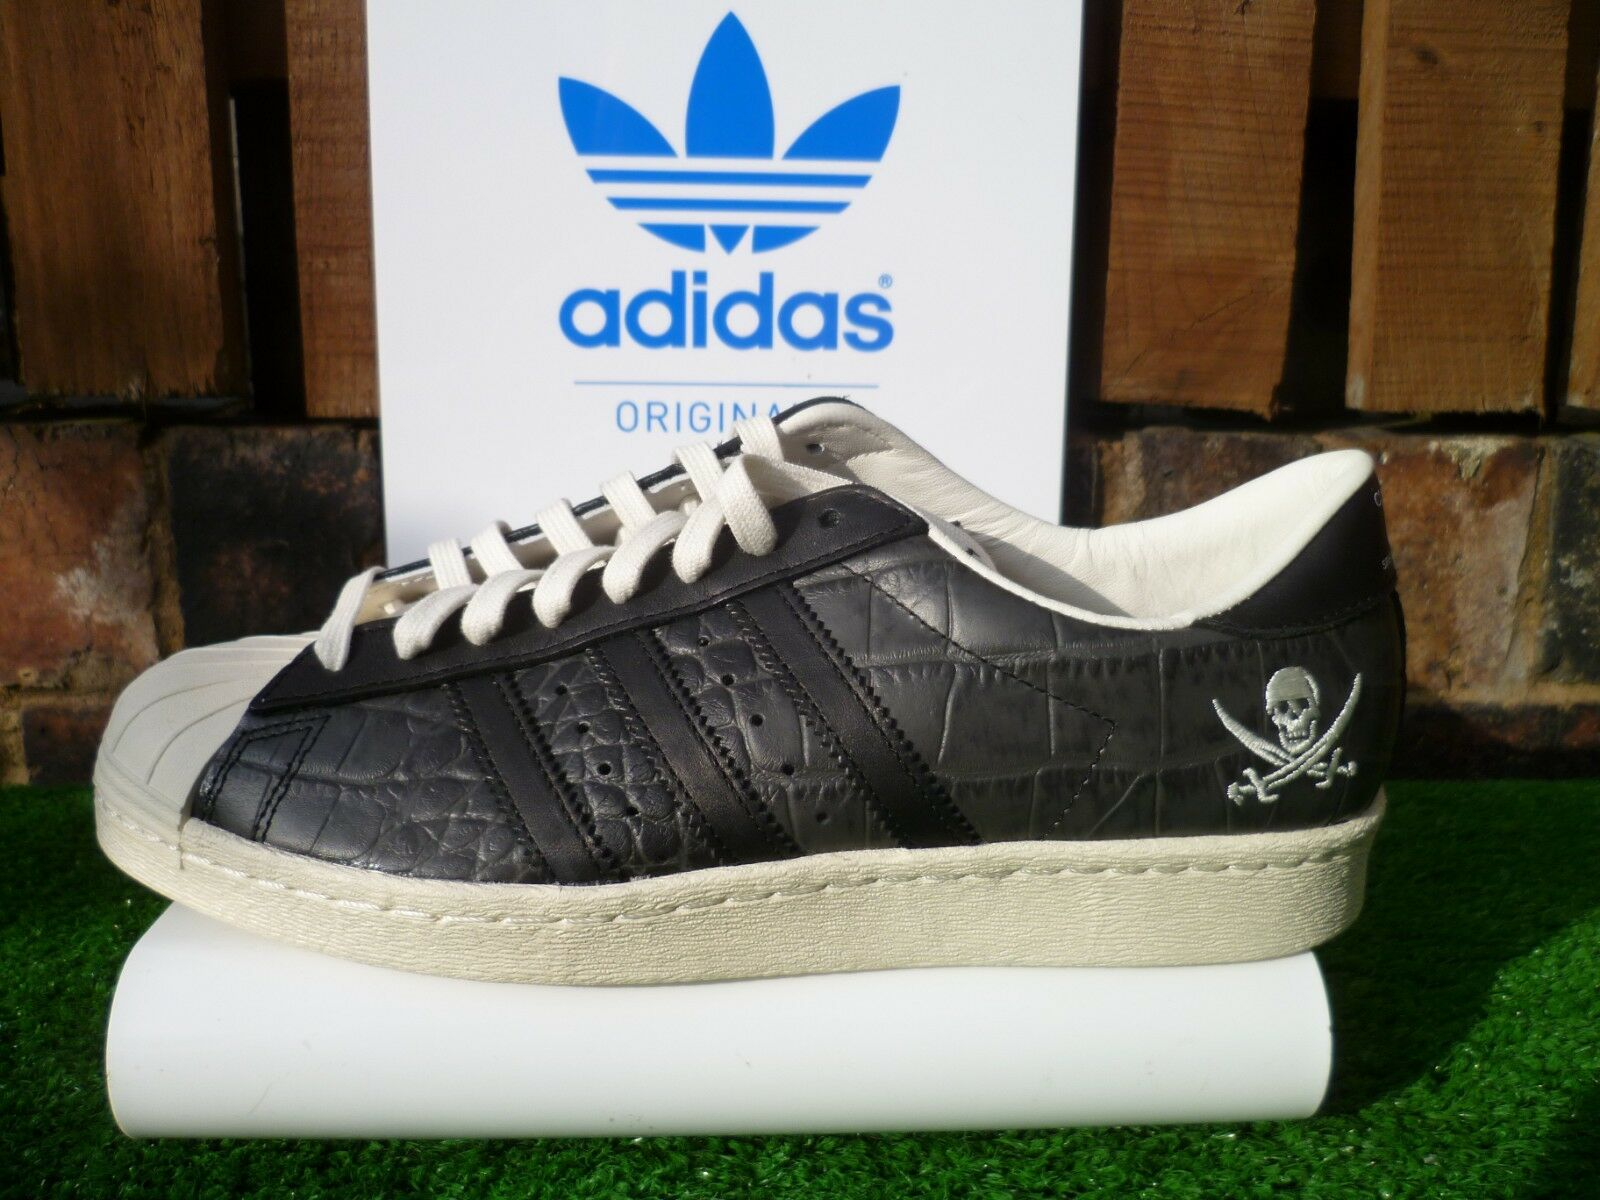 Adidas SUPERSTAR NEIGHBOURHOOD CONSORTIUM 10 ANNIVERSARY 80s casuals UK8.5 BNWT